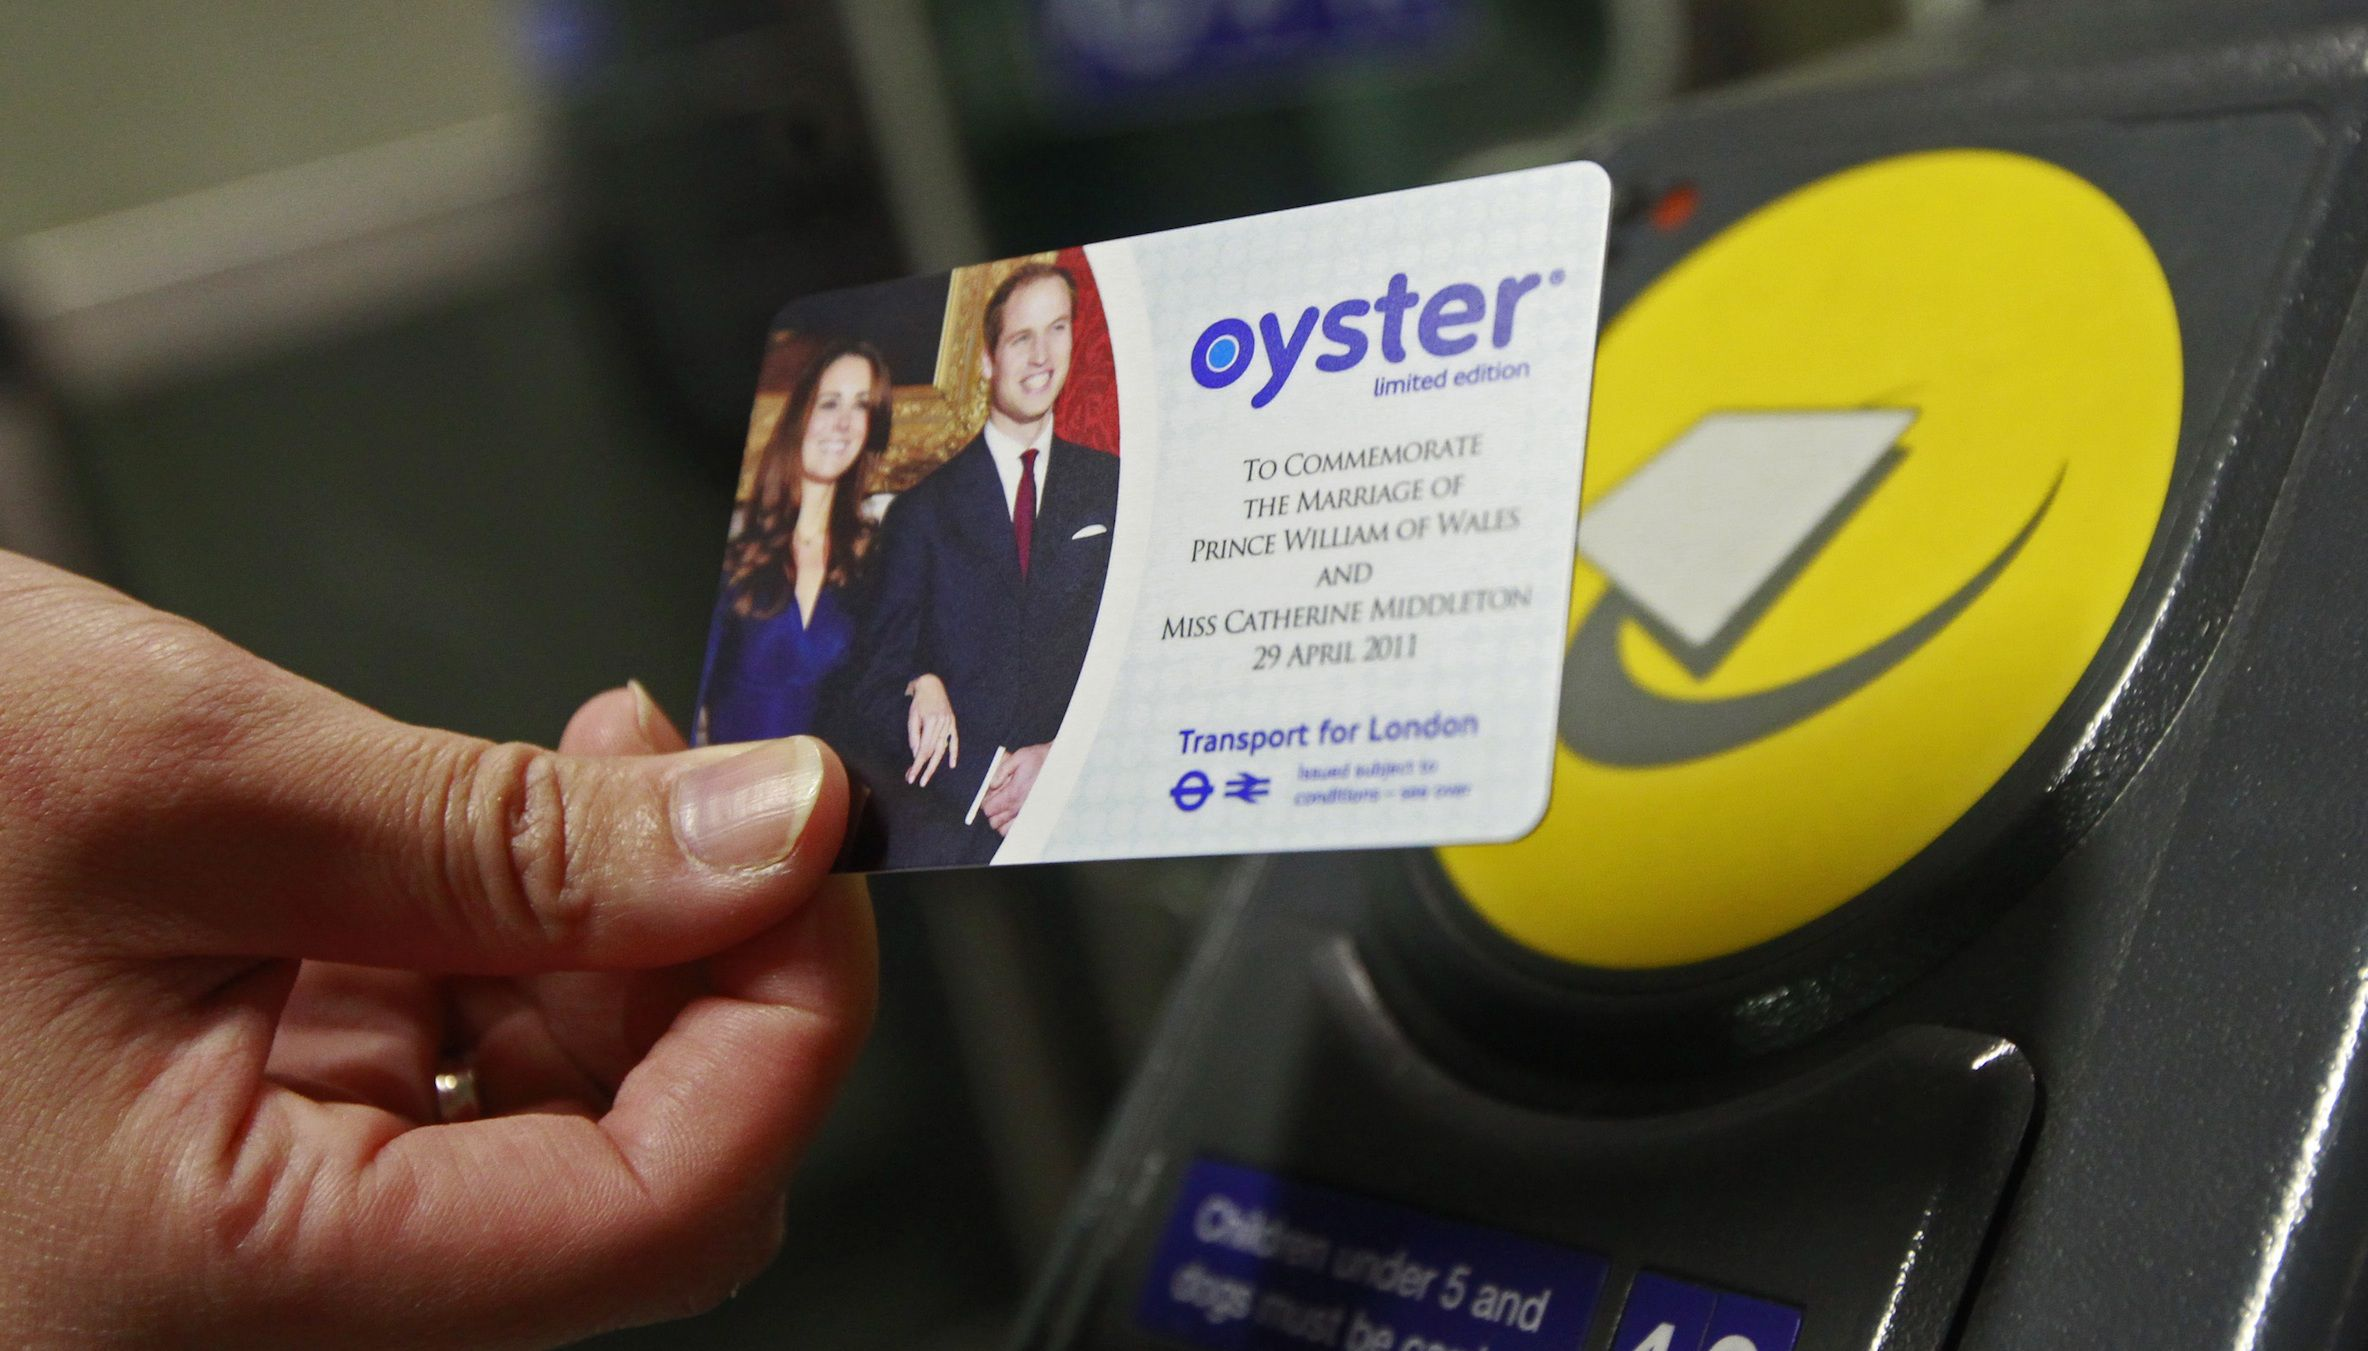 A tube passenger holds a royal wedding commemorative Oyster card, bearing an image of Britain's Prince William and his fiancee Kate Middleton, at an entrance barrier in King's Cross station in London April 21, 2011. 750,000 of the cards which are a commemorative version of the widely used electronic device used to pay for train and bus tickets in London, went on sale on Thursday. REUTERS/Luke MacGregor   (BRITAIN - Tags: ENTERTAINMENT TRAVEL ROYALS SOCIETY) - RTR2LH1X